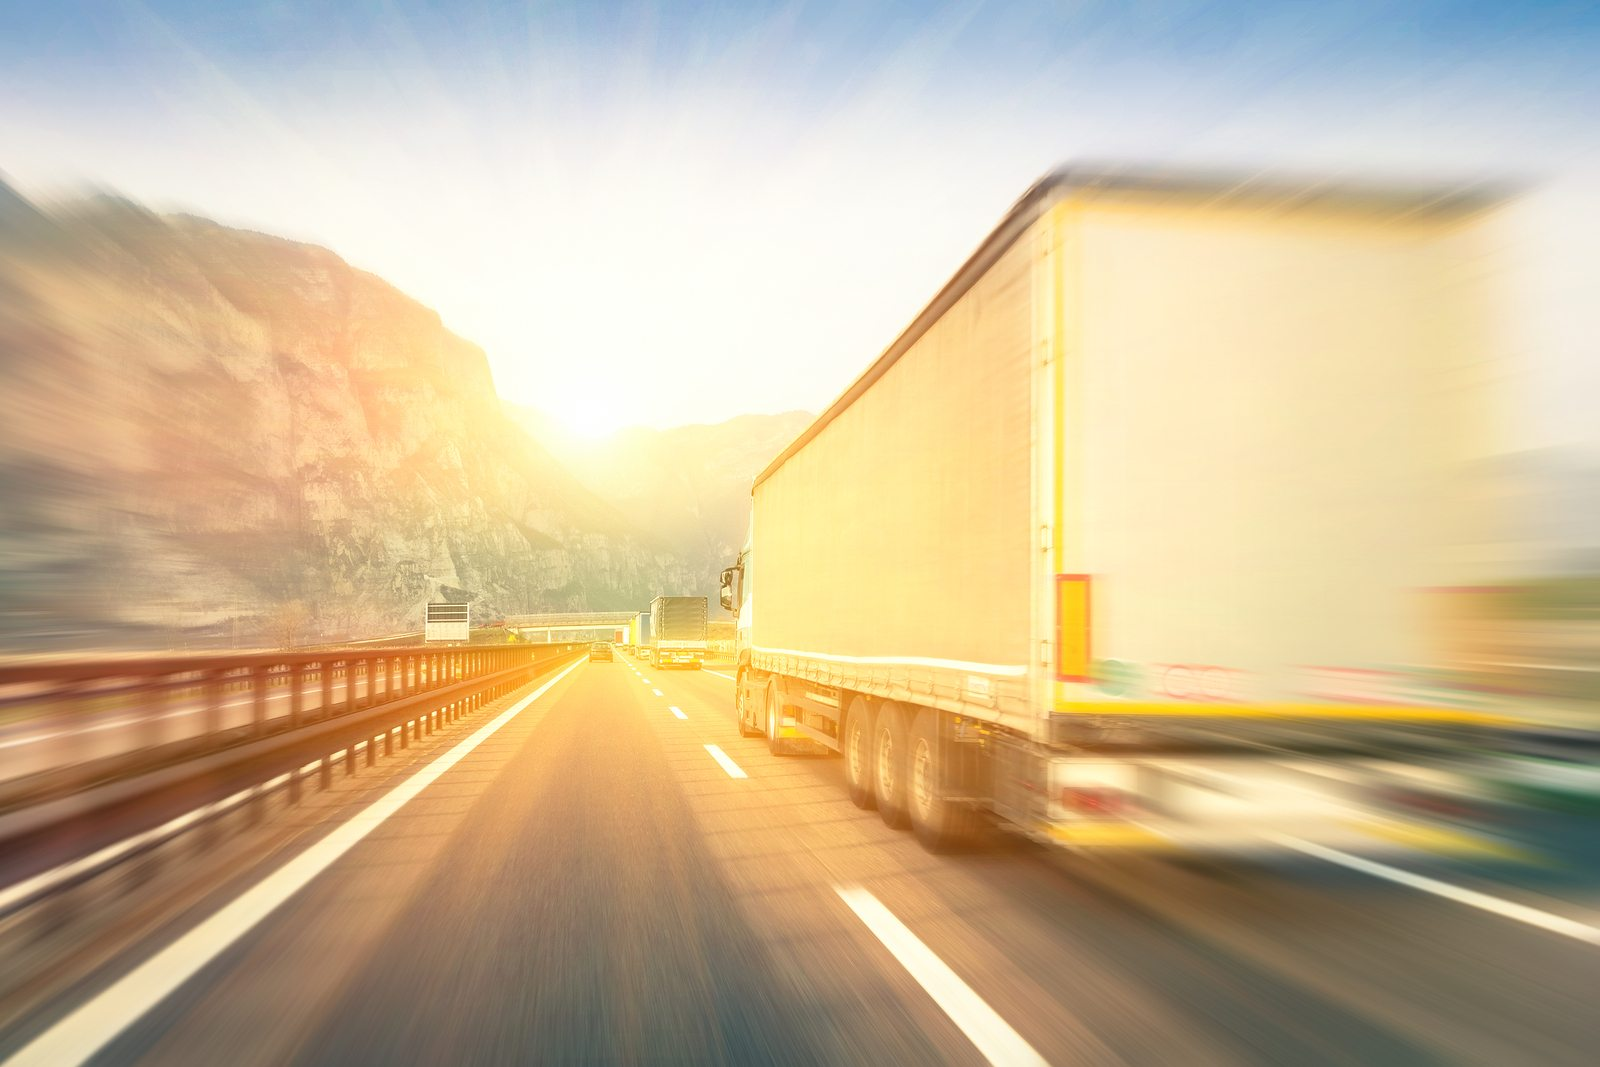 https://www.crlease.com/sites/default/files/revslider/image/bigstock-Generic-Semi-Trucks-Speeding-O-95099174.jpg